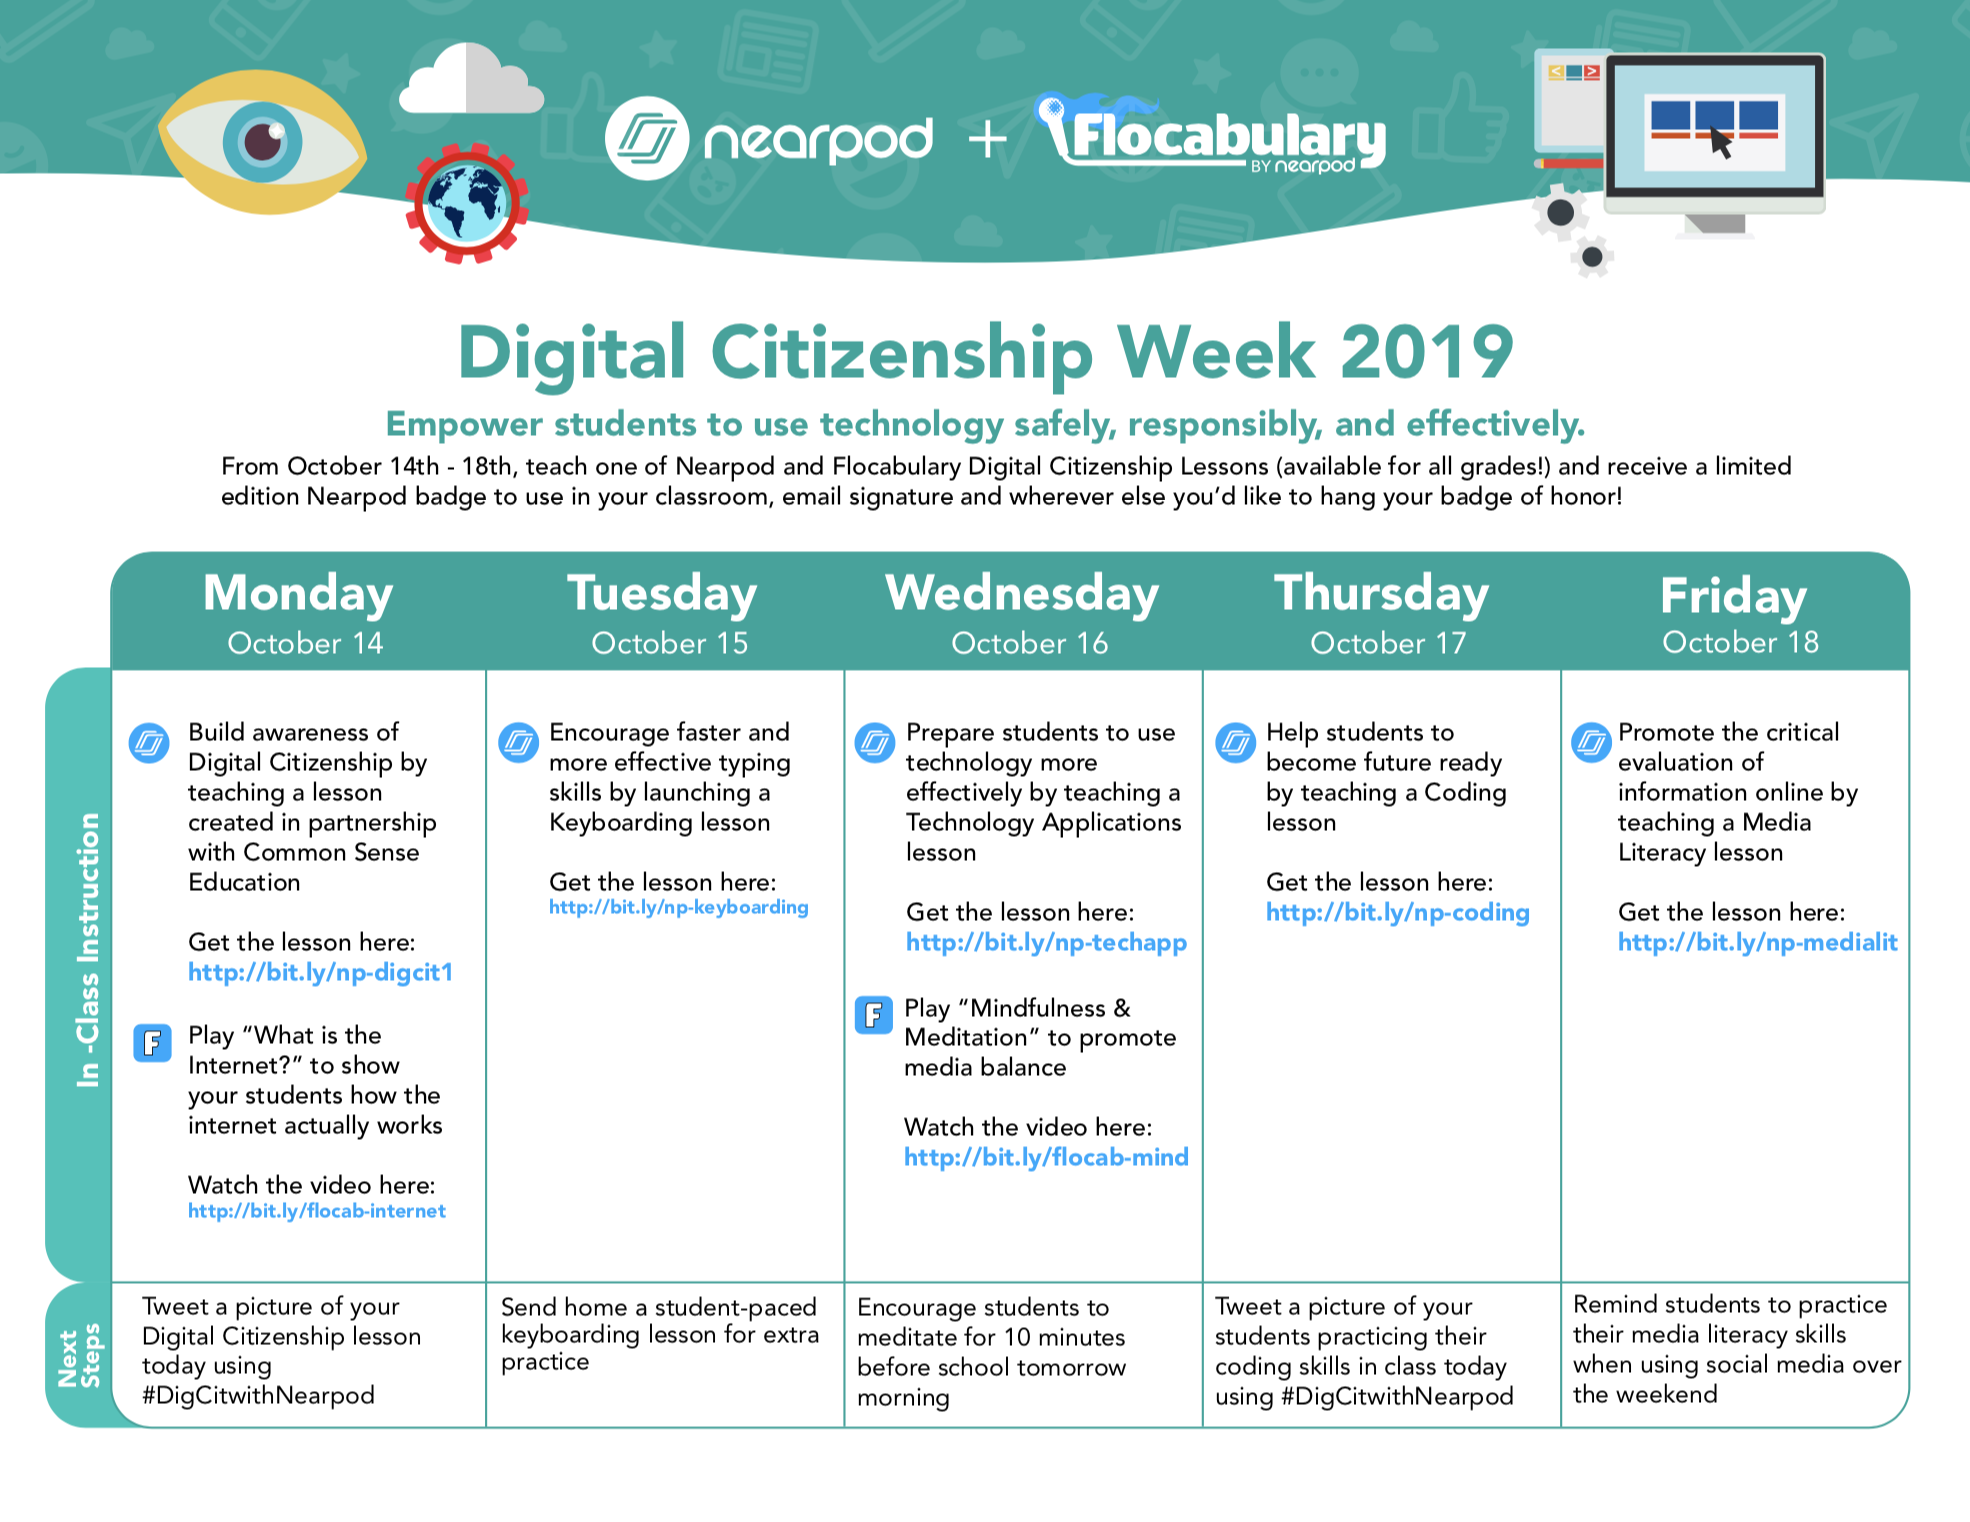 digital-citizenship-week-lessons-free